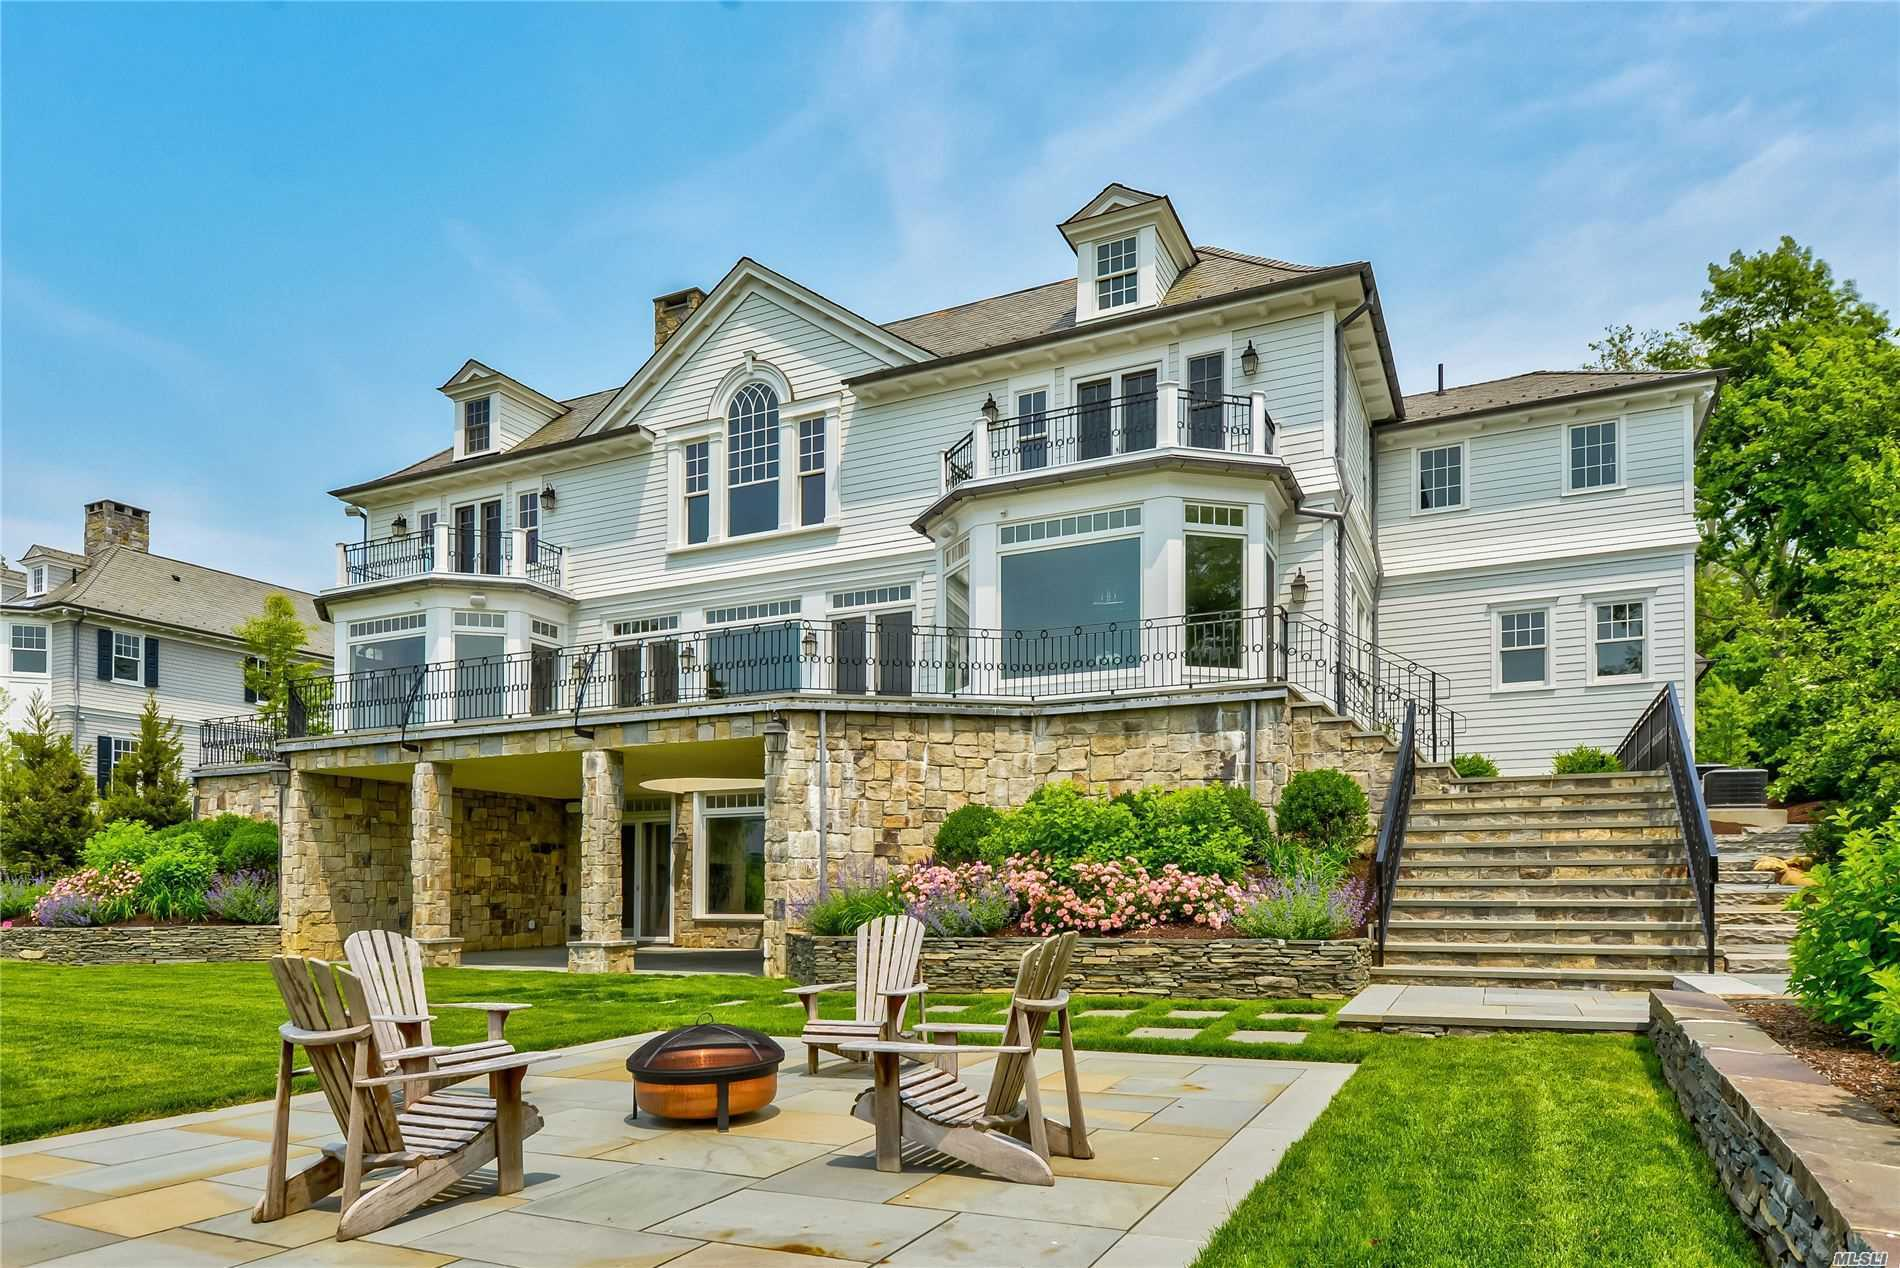 Newly Designed And Built This Connecticut Stone And Ship-Lap Center Hall Colonial, Situated On A Private Road In Plandome Over Looks Manhasset Bay With Year Round Sunsets. Offers 6 Bedrooms, 5 Full Baths, 3 1/2 Baths. School District 6. Convenient To Train And Shopping. Dock Permit Secured. Hoa $200 Per Month